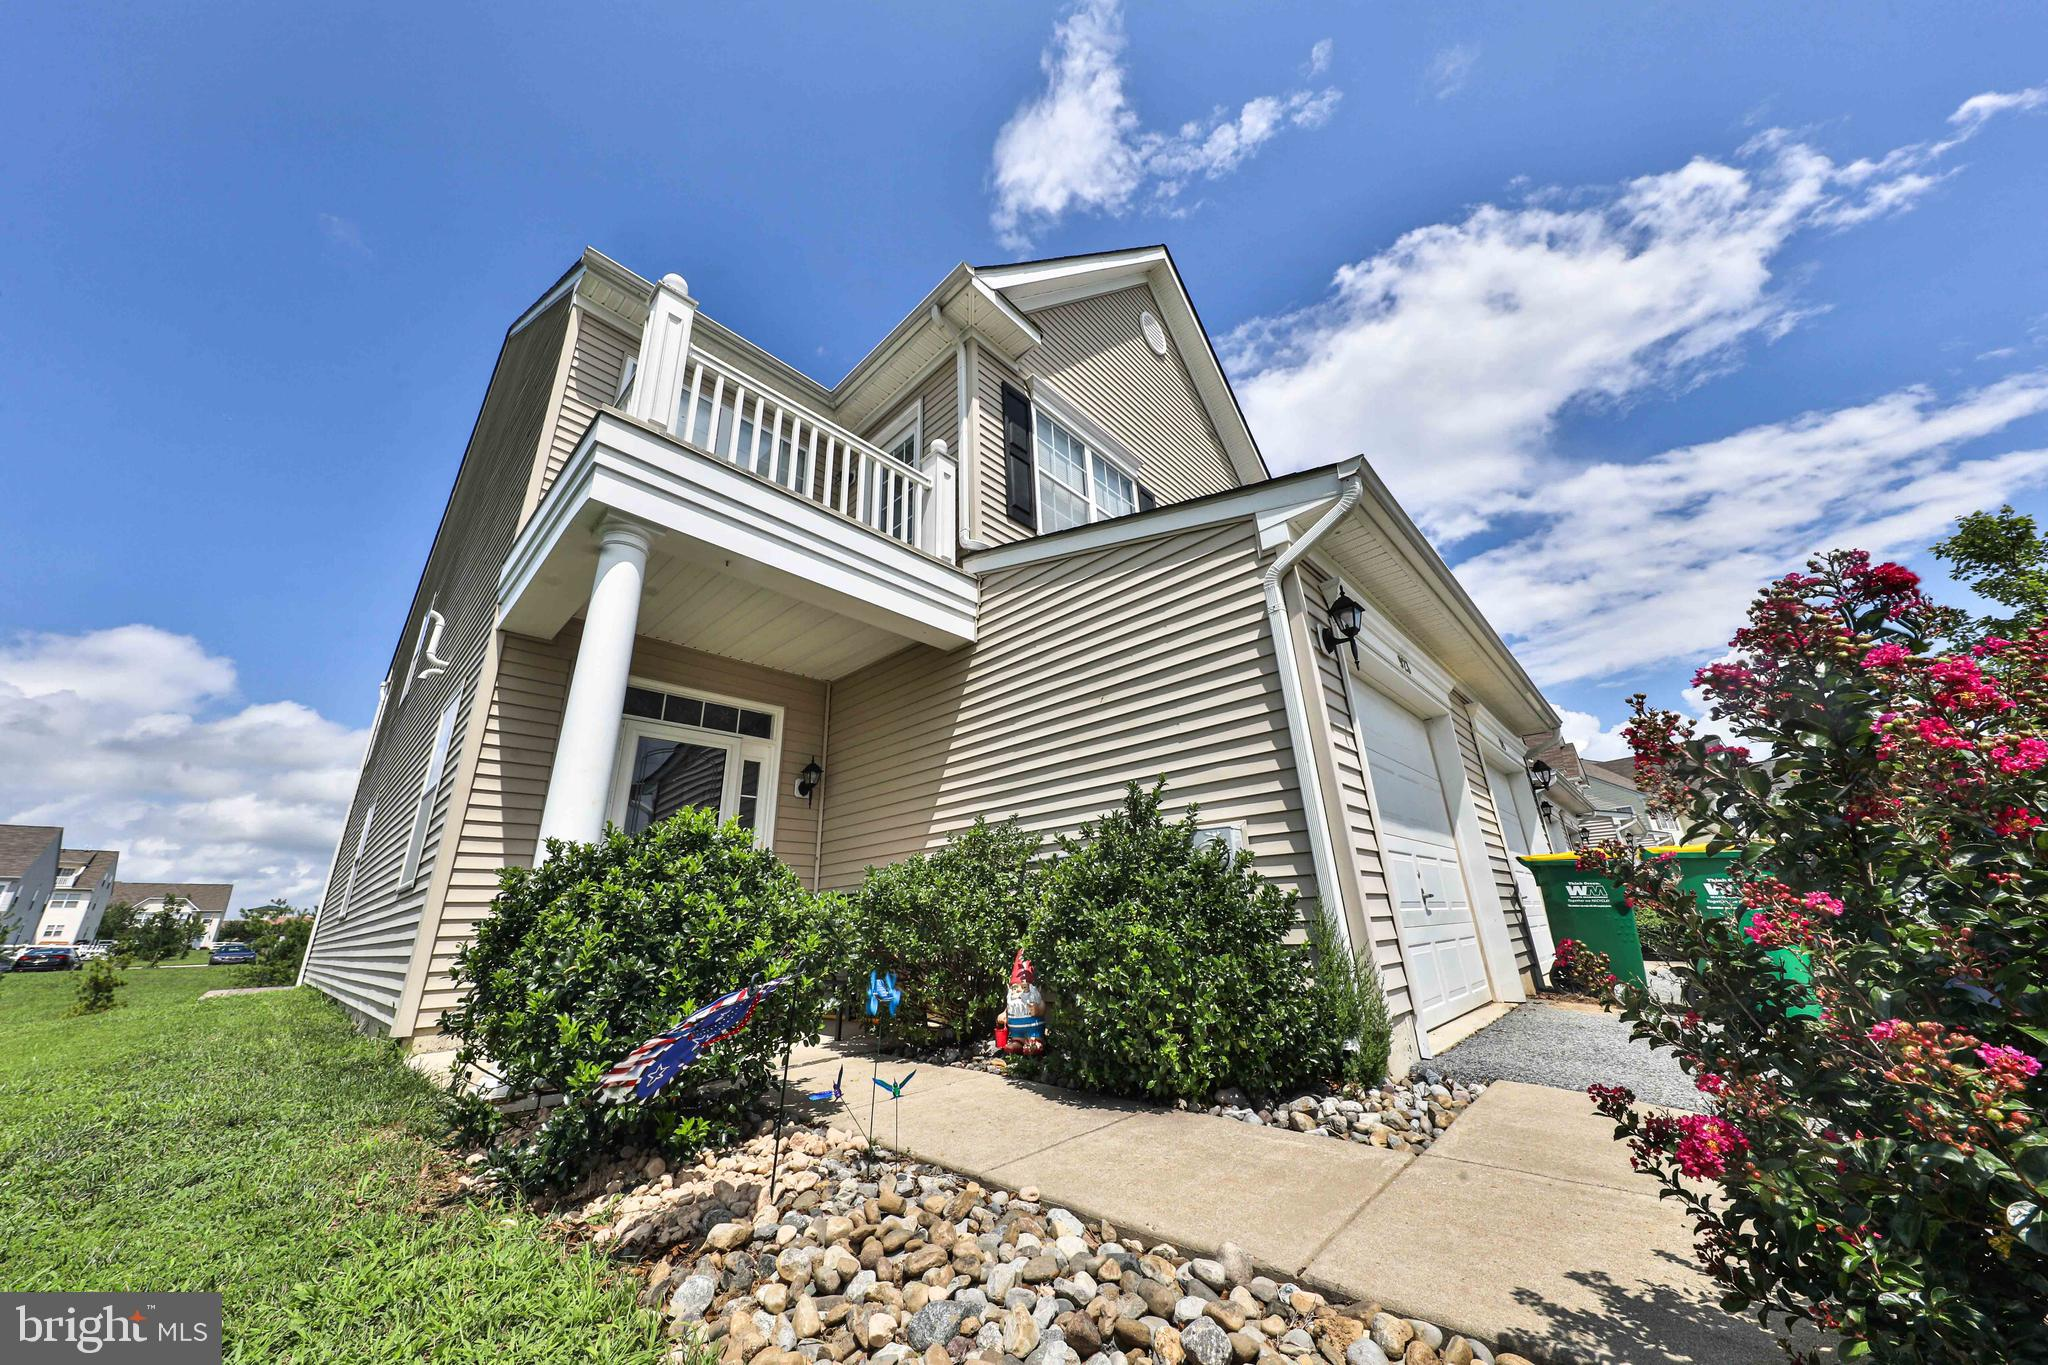 BACK ON THE MARKET! This stunning end unit townhouse shows like a model home located on one of the best lots in the neighborhood! The gleaming hardwood floors greet you as you enter the bright foyer and continue into the impressive open floor plan of the first floor. Enjoy entertaining with family and friends in the large living room, eat-in-kitchen with sun room and patio off of the sliding glass doors.  Endless cabinets and counter space are featured in the well-designed kitchen. The master suite includes the upgraded balcony overlooking the breathtaking community pond. There is also a private full master bathroom with dual sinks and convenient second floor laundry room. Notice the upgraded flooring, railing and spindles along the second floor hallway as you explore the additional two bedrooms and full hall bathroom perfect for out-of-town guests. Sure to please the most stylish buyers are the custom neutral colors throughout this home. The conveniences of a pharmacy, Christiana Care facility, police station, WaWa gas station, restaurants, grocery store and more are all within walking distance along with access to Route 1 for an easy commute. This property is truly move-in ready and awaits the new homeowner to move in and enjoy!